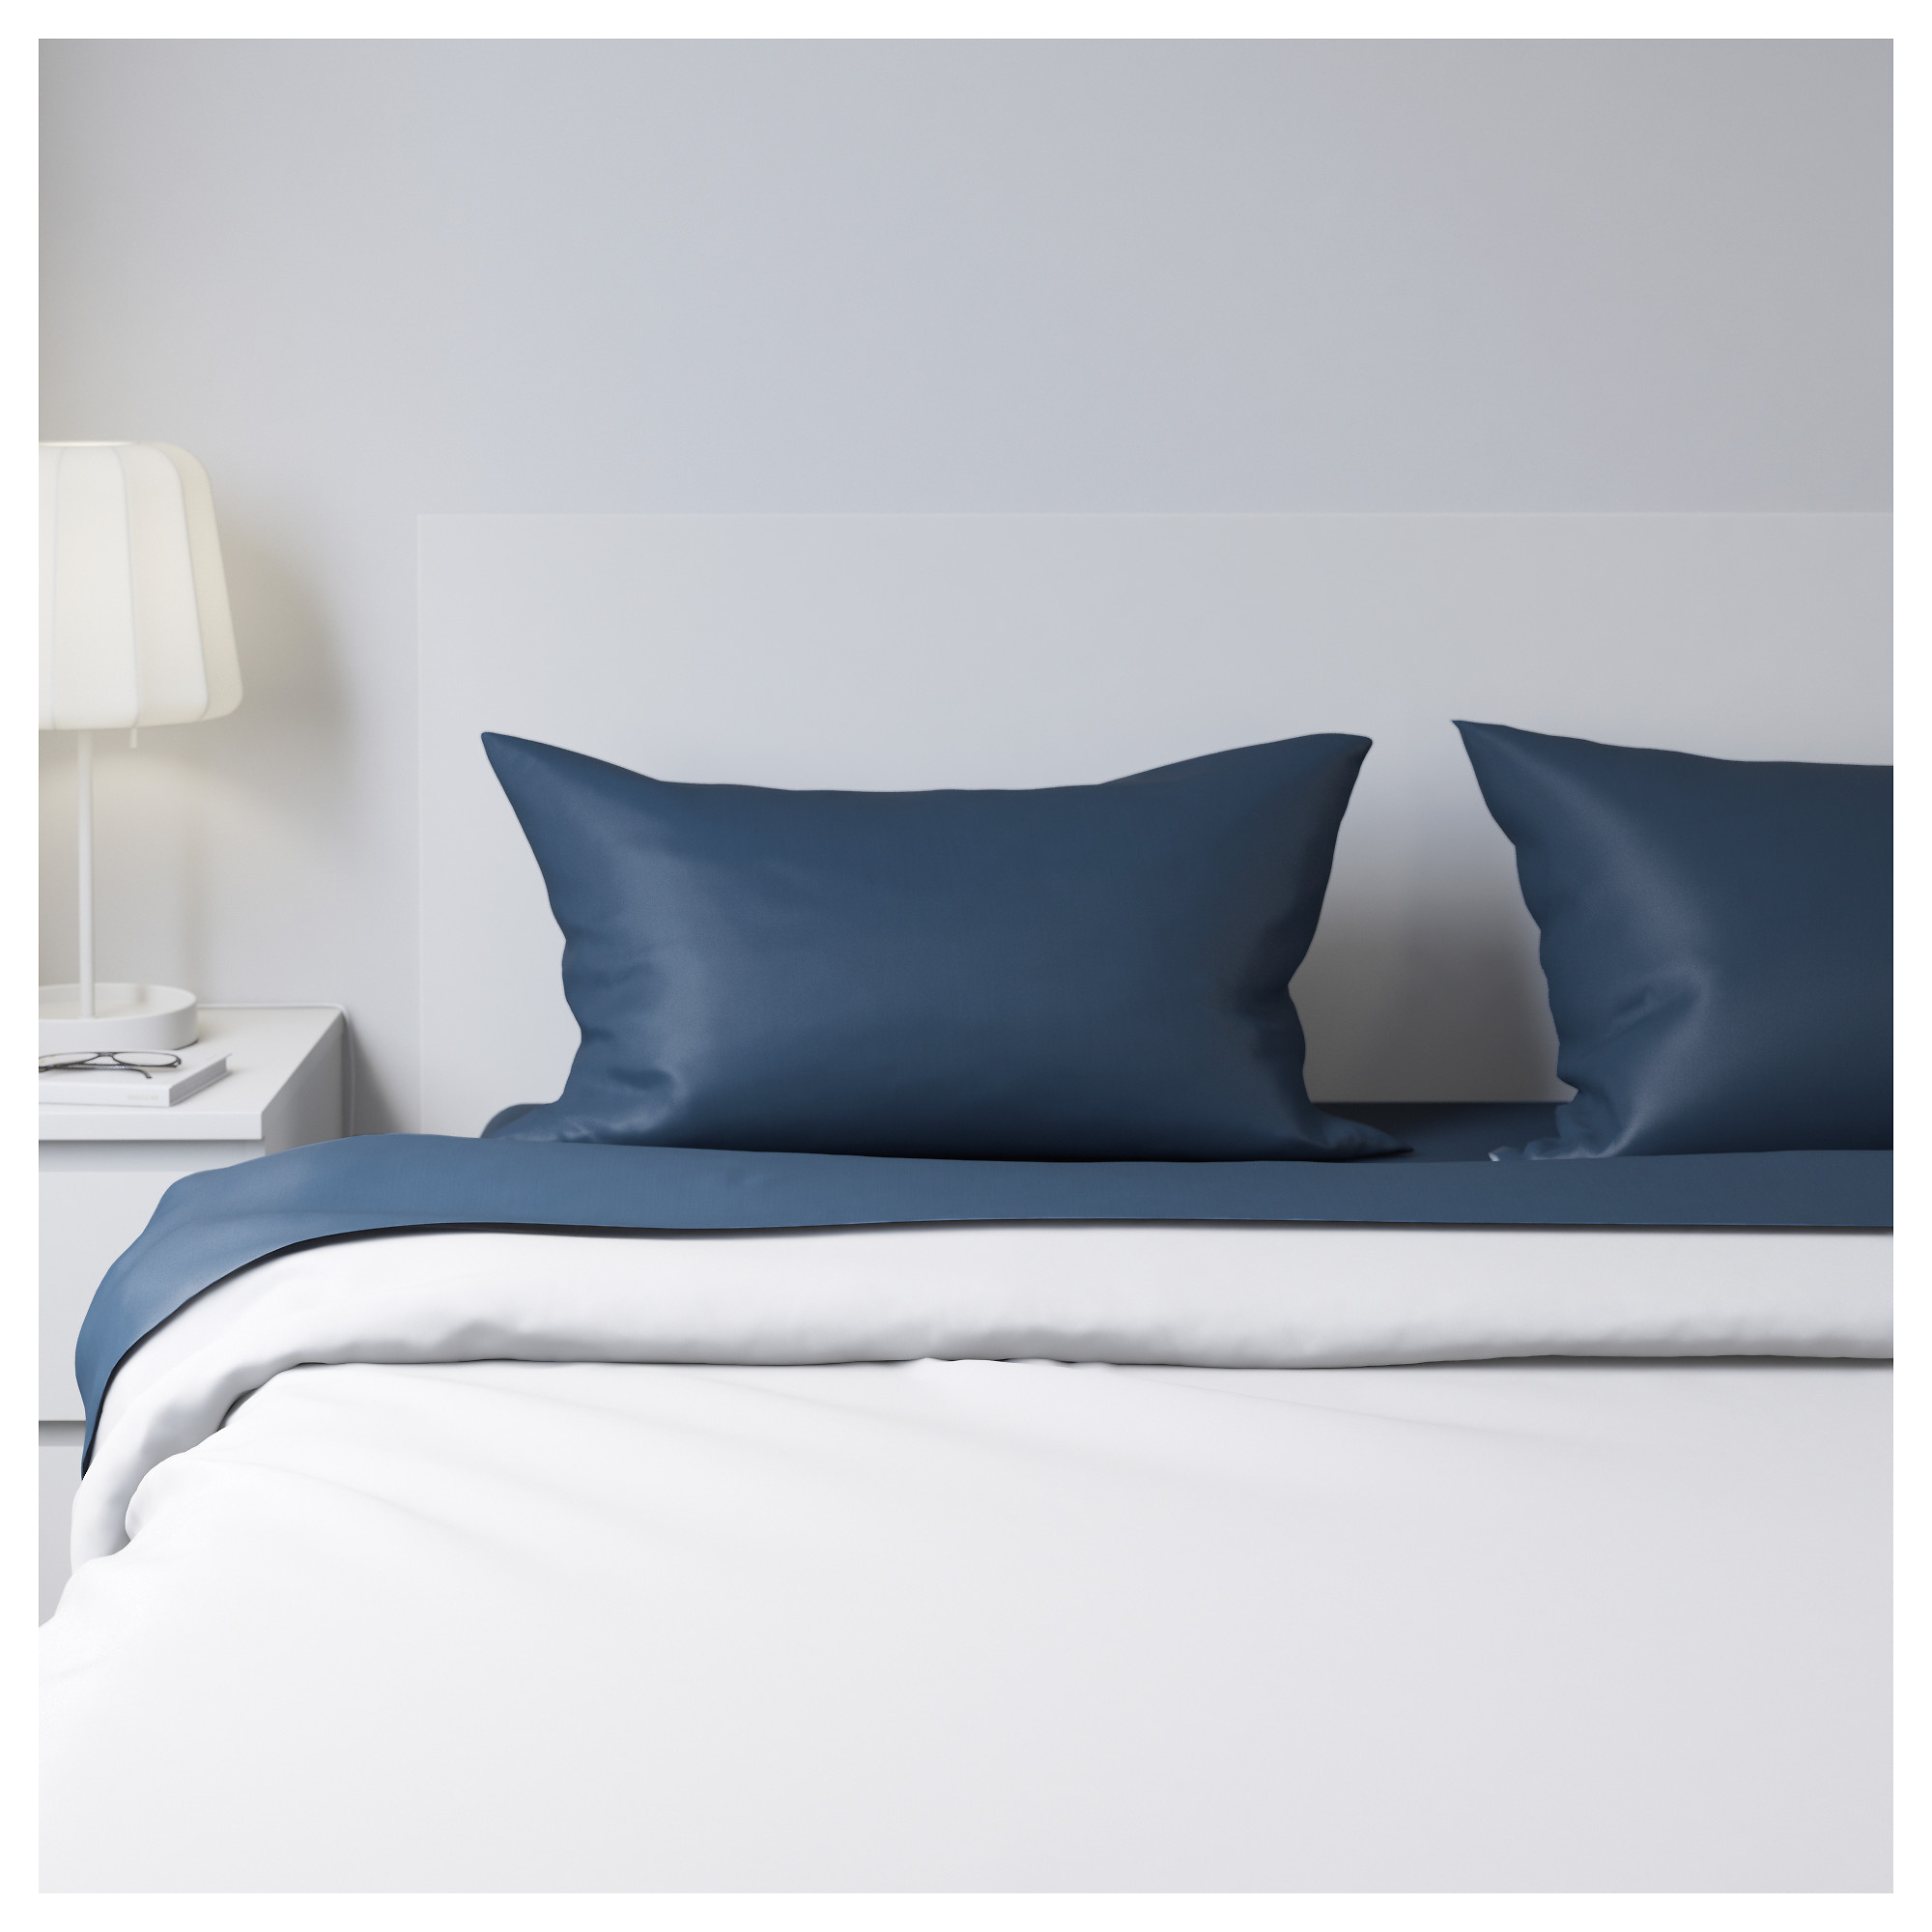 ULLVIDE sheet set, dark blue Thread count: 200 /inch Thread count: 200